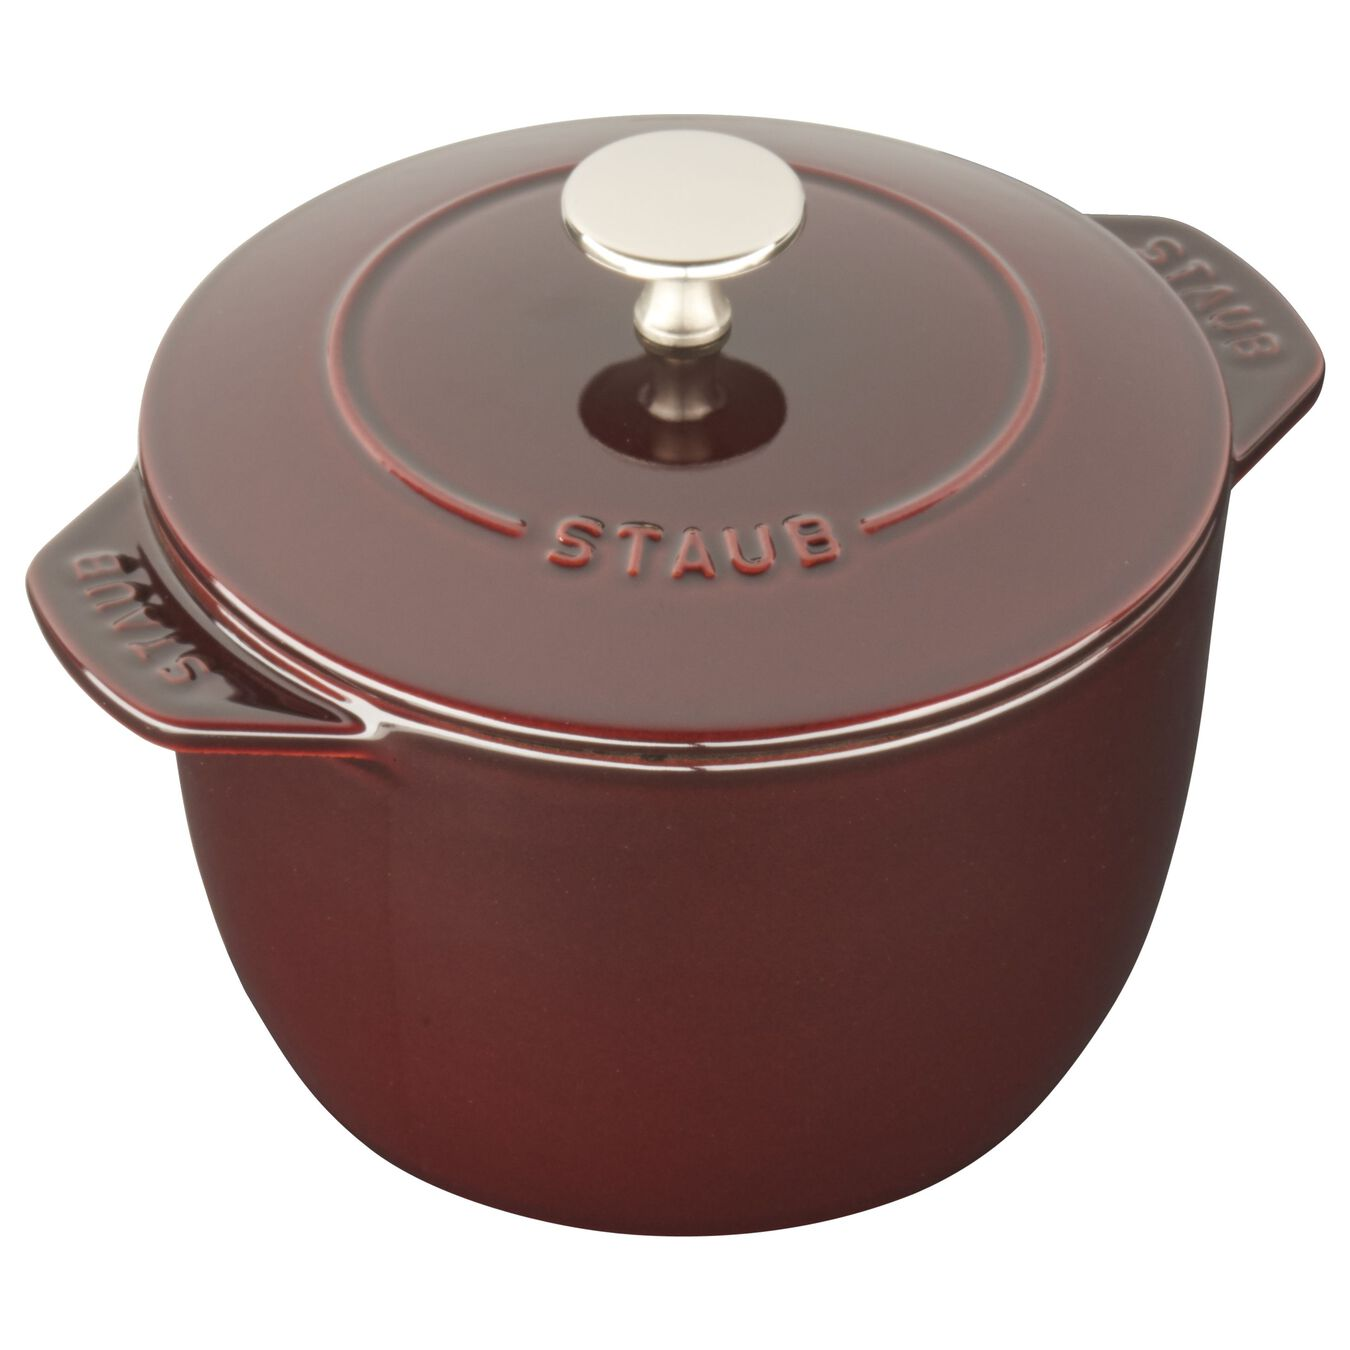 1.5 l Cast iron round Rice Cocotte, Grenadine-Red,,large 2